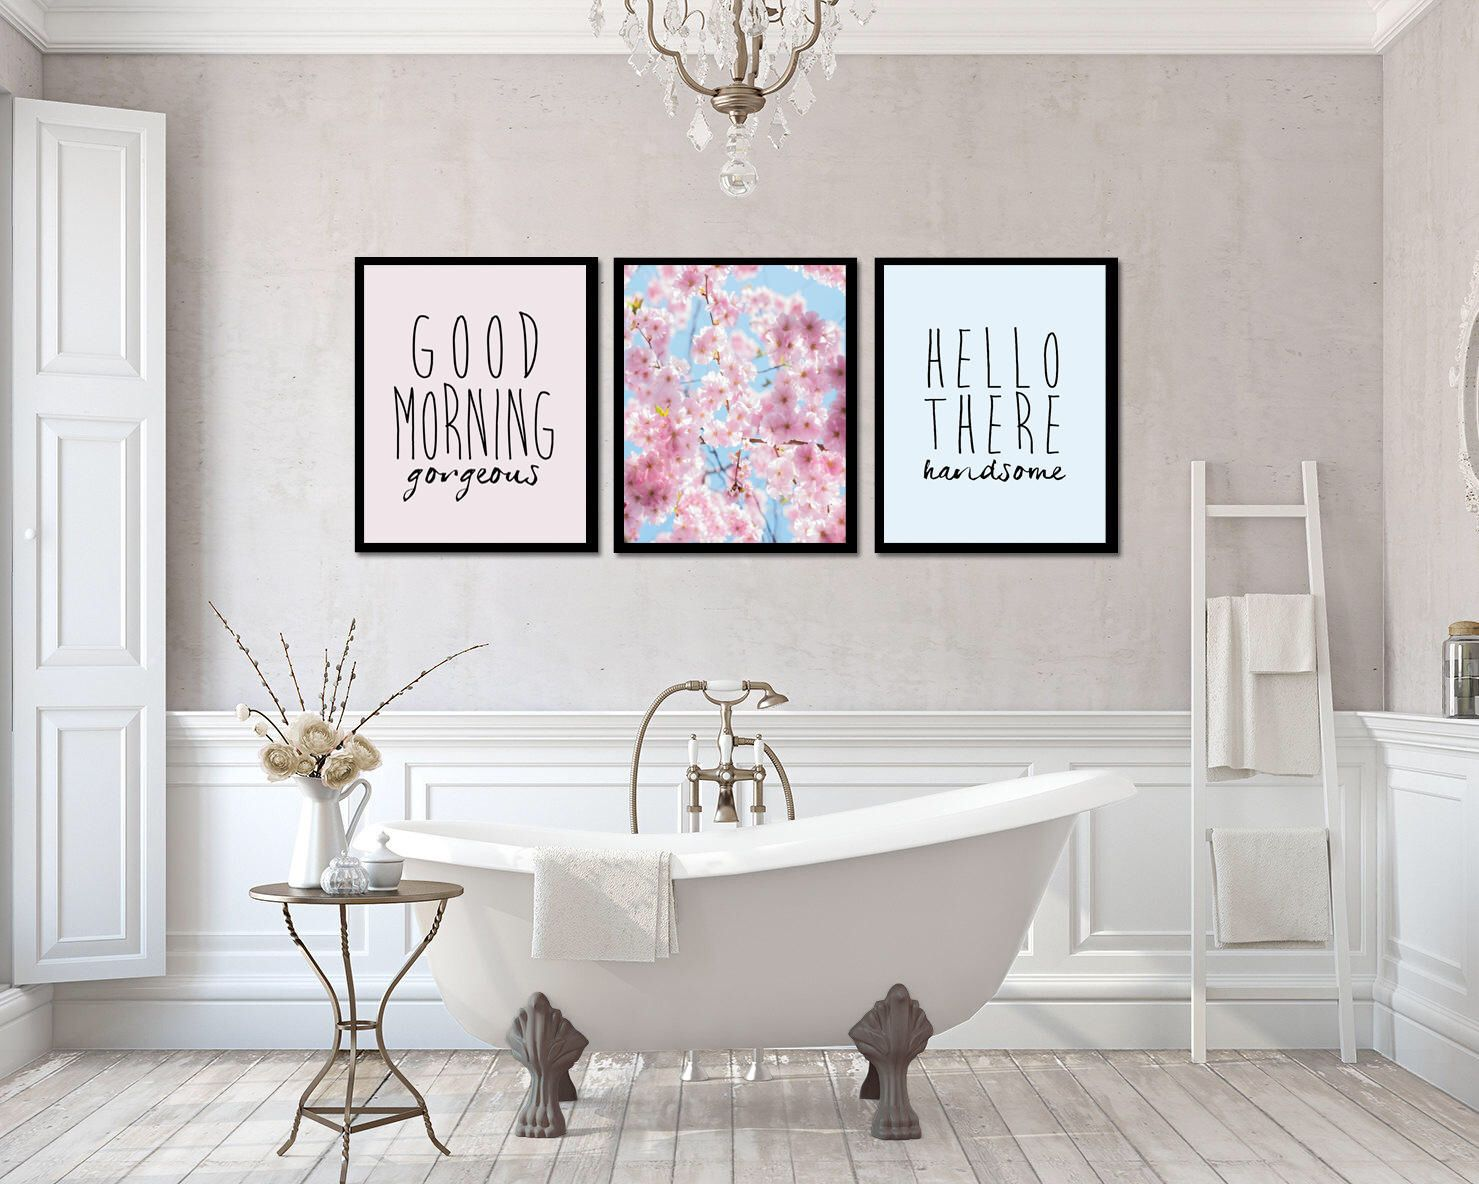 Good morning gorgeous print hello handsome wall art set of bedroom